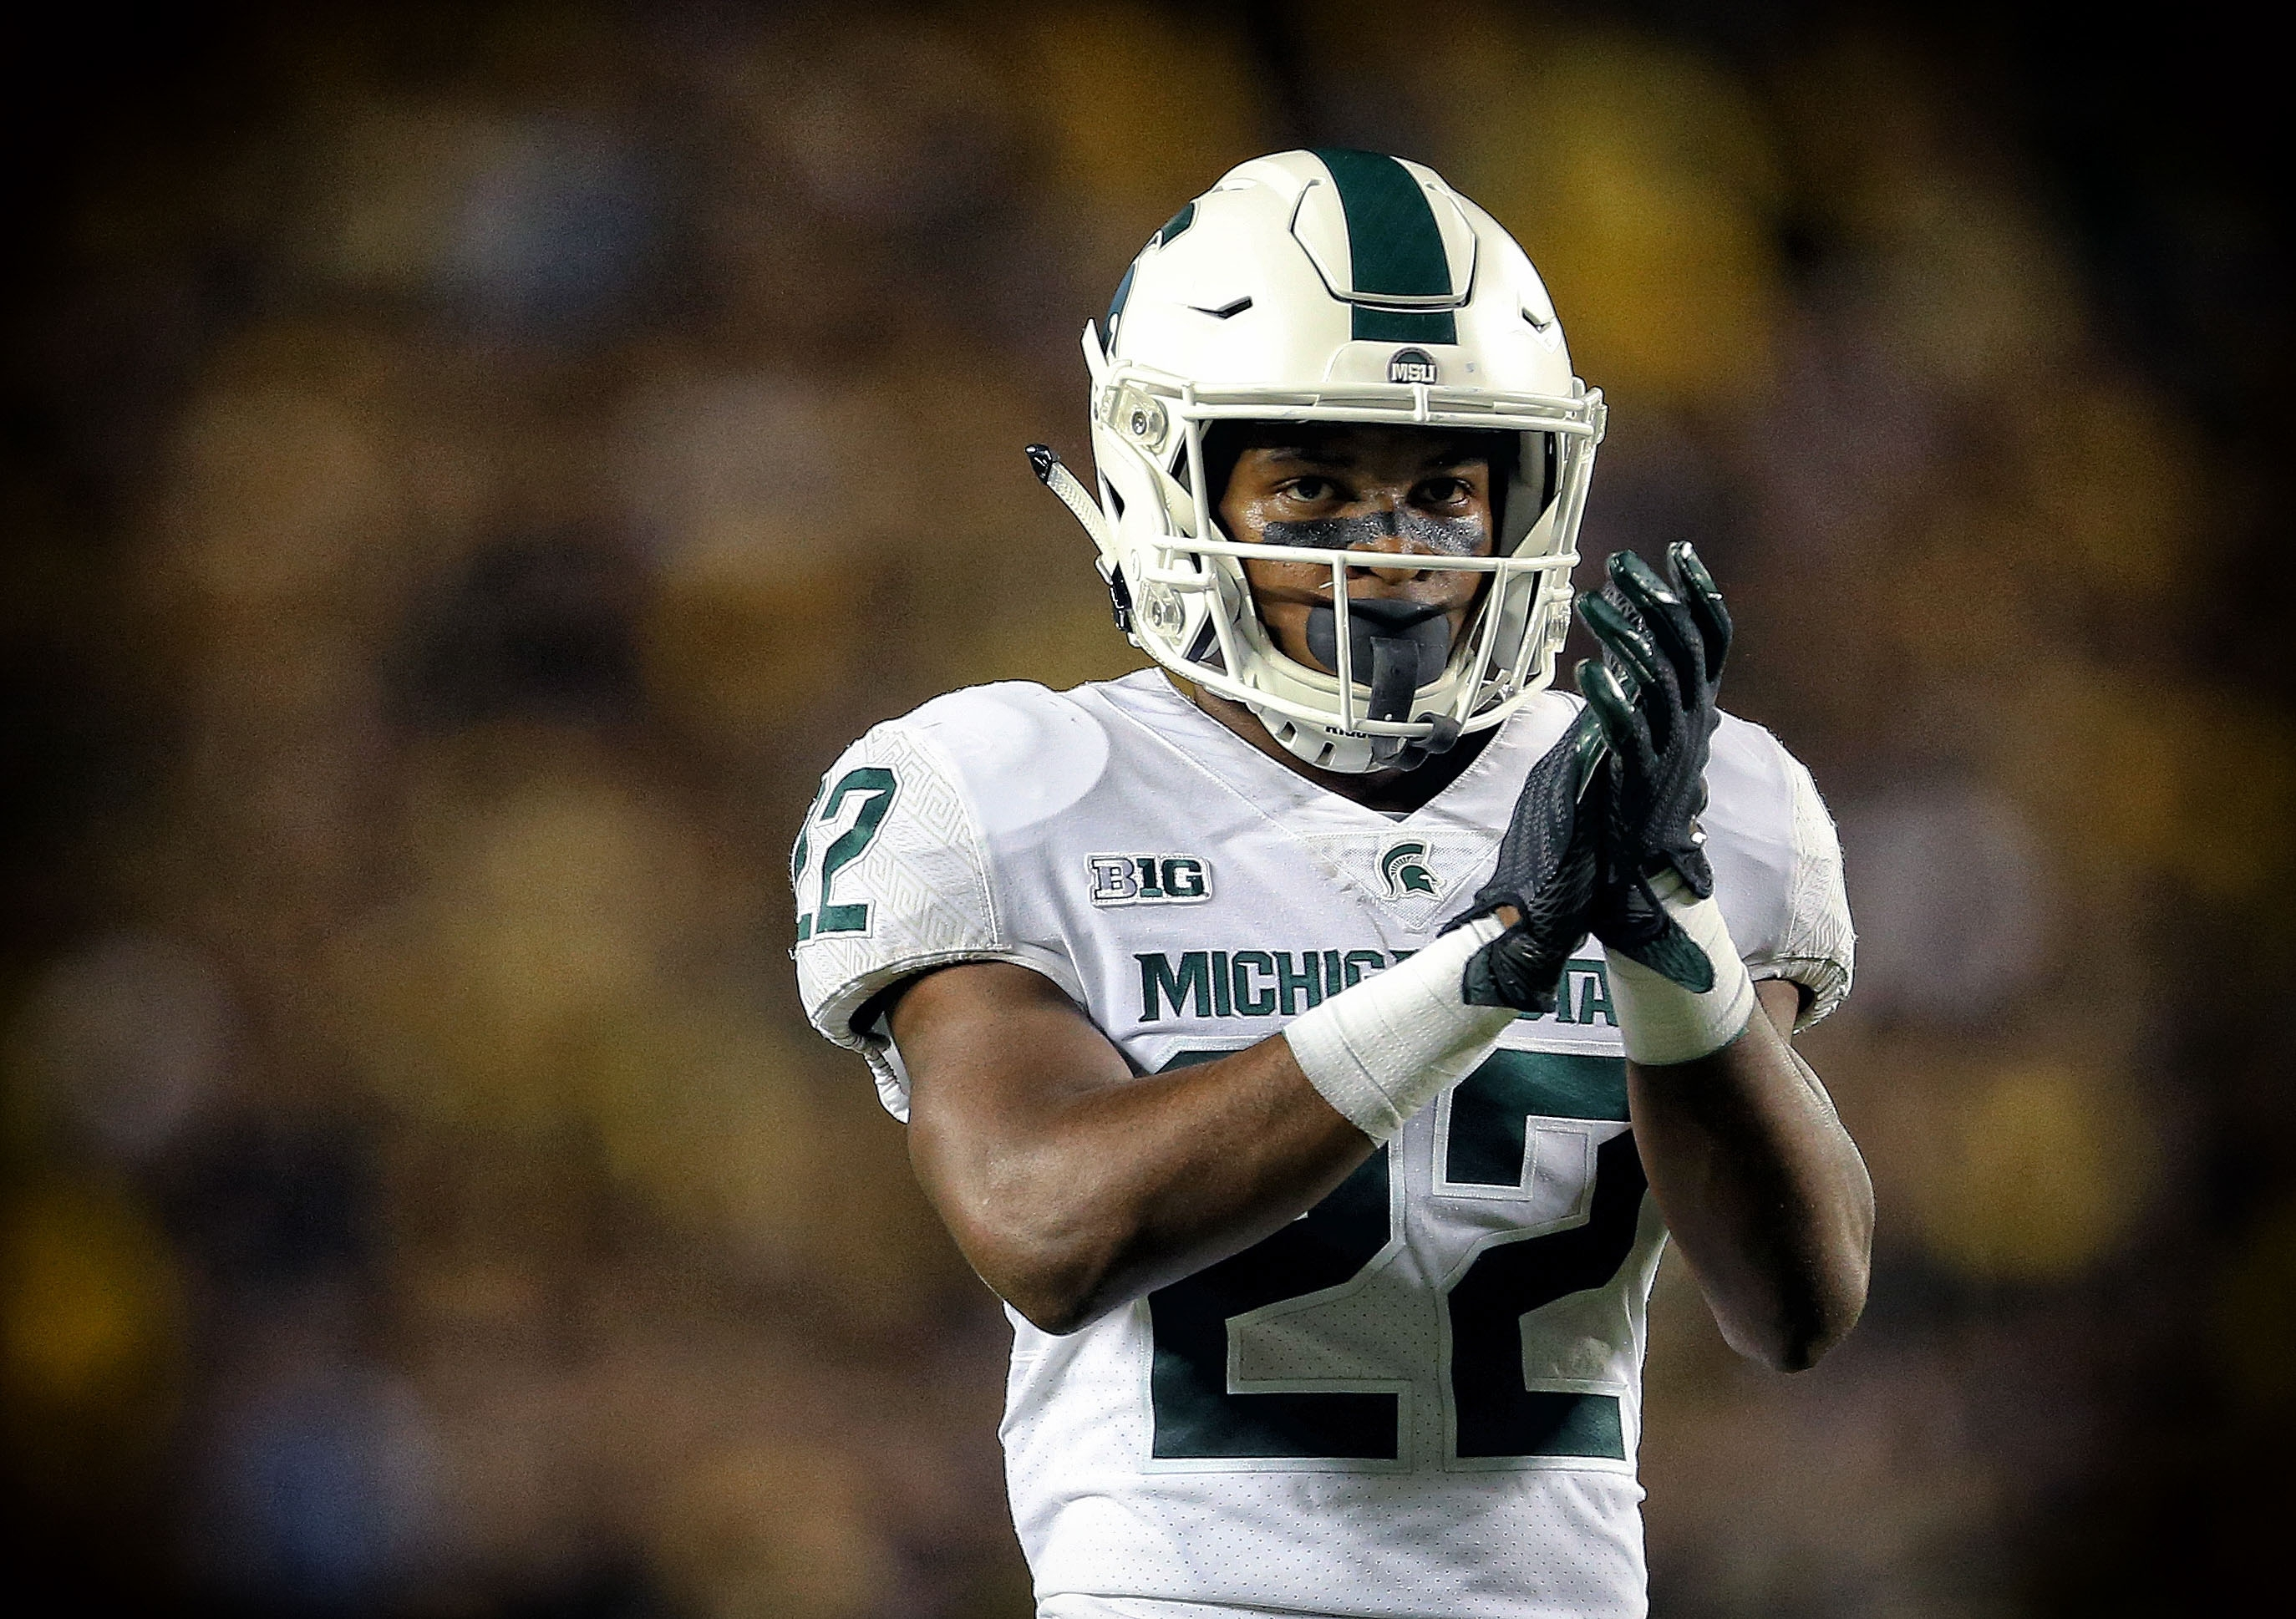 Michigan State Football 2018 Preview: Extremely Experienced regarding Employee Rotation Program Football Theme